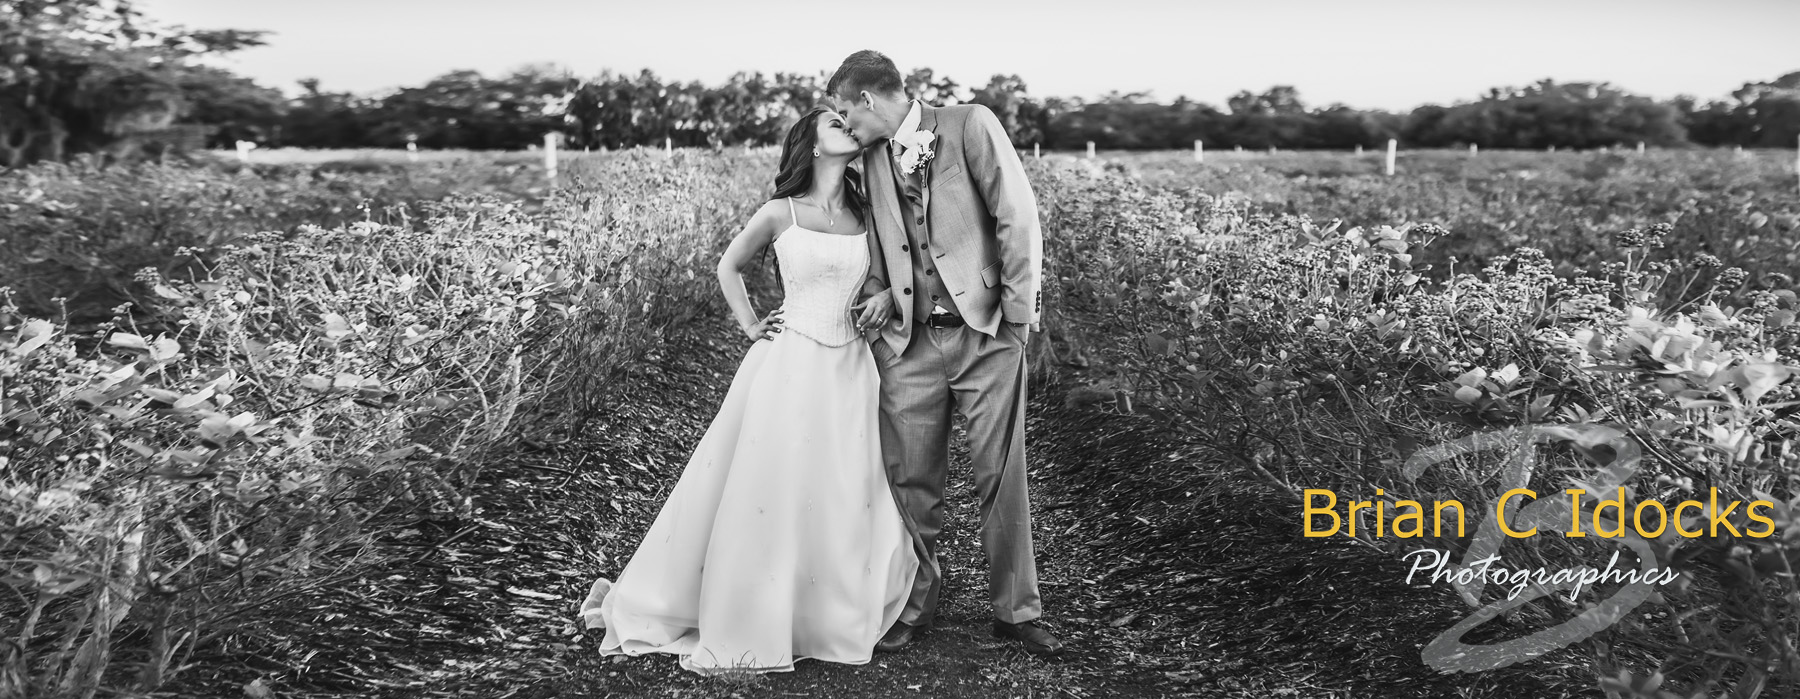 Inexpensive Wedding Photography: Affordable Wedding Photography Packages, Starting At $800